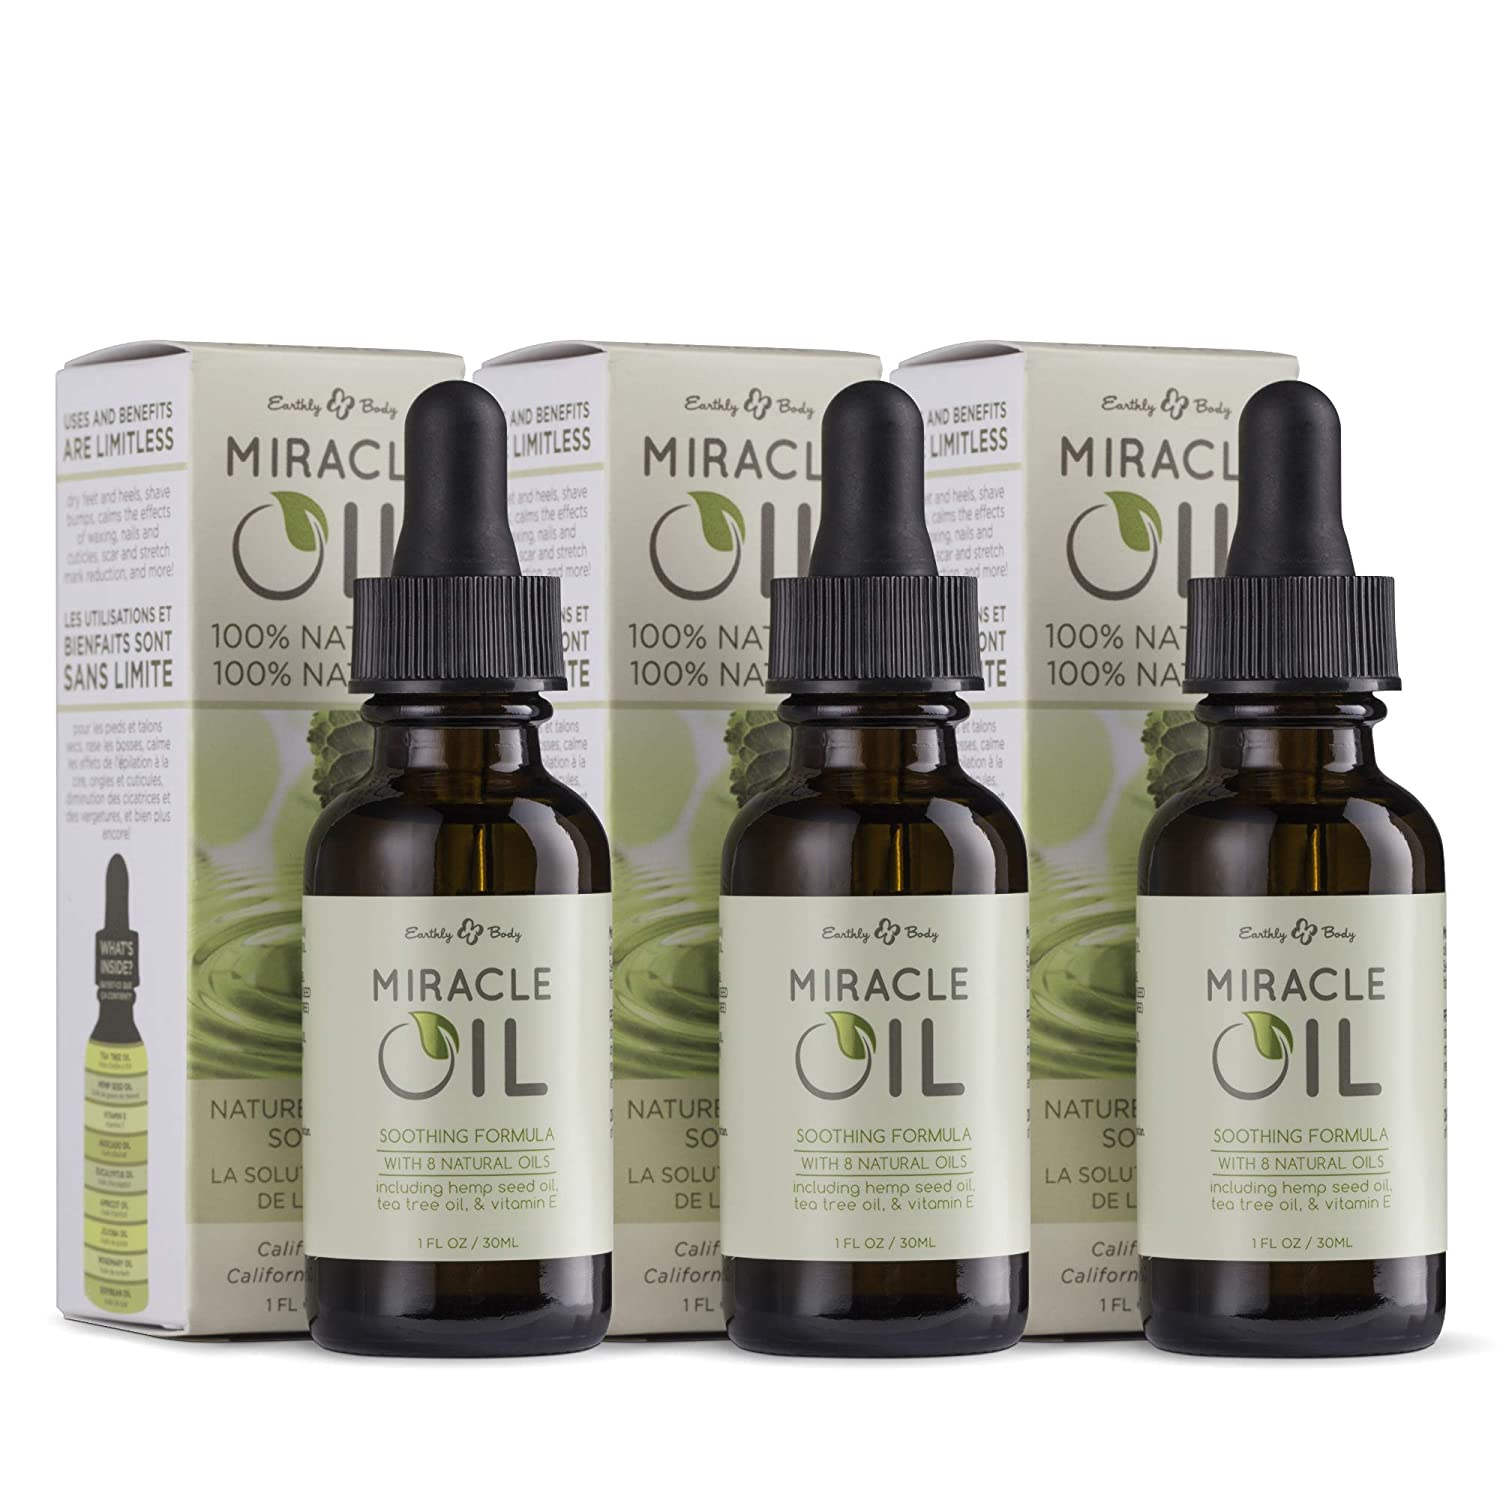 Earthly Body Miracle Oil, 1 fl. oz. - 3 Pack - 100% Natural Tea Tree Oil, Hemp Seed Oil & Vitamin E - Moisturizer, Calms Skin Irritations, Helps Smooth Wrinkles - Gluten Free, 100% Vegan